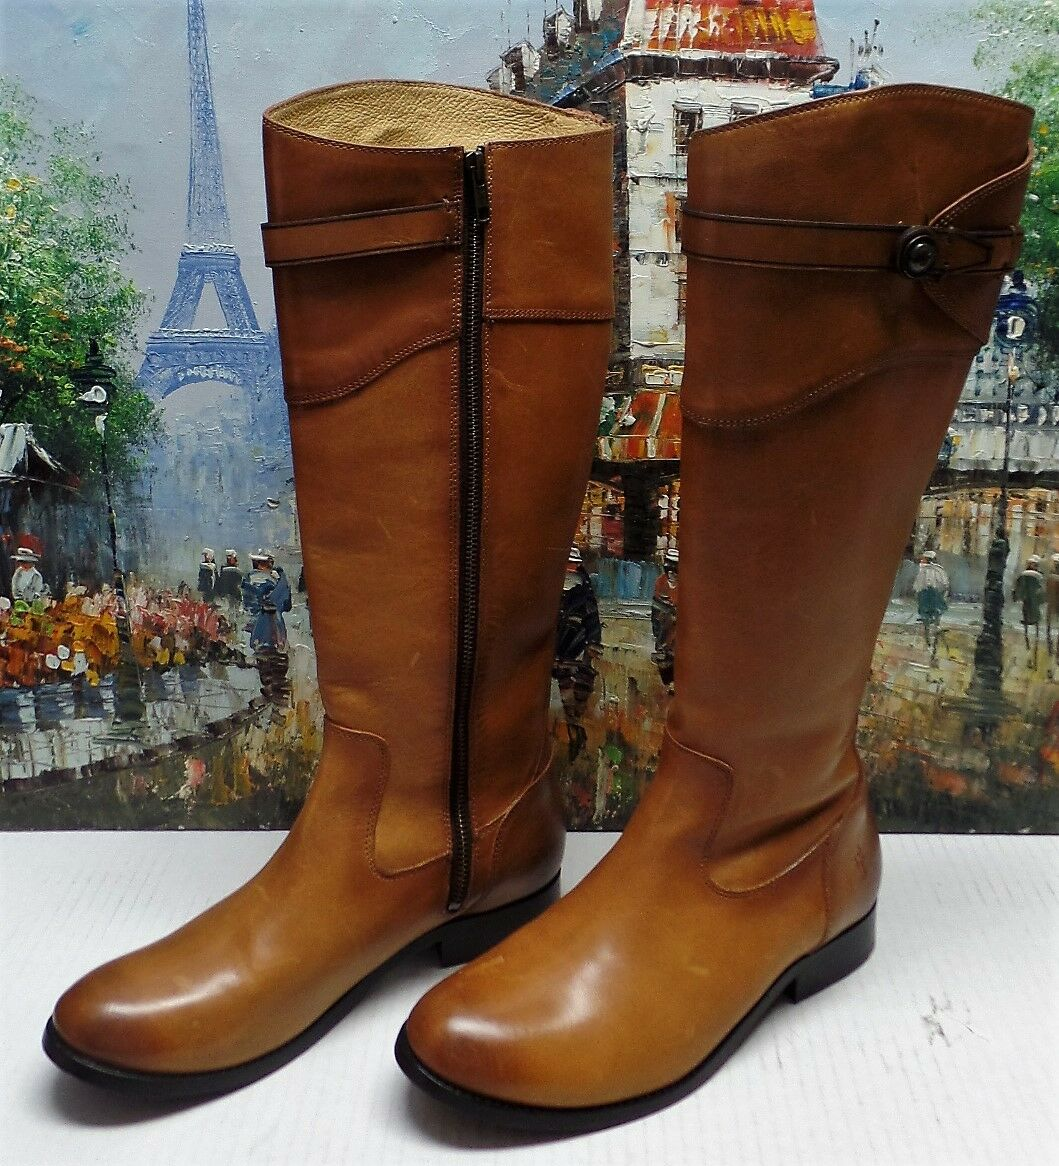 Frye 'Molly Button' Riding Boot - Size 8B -  358